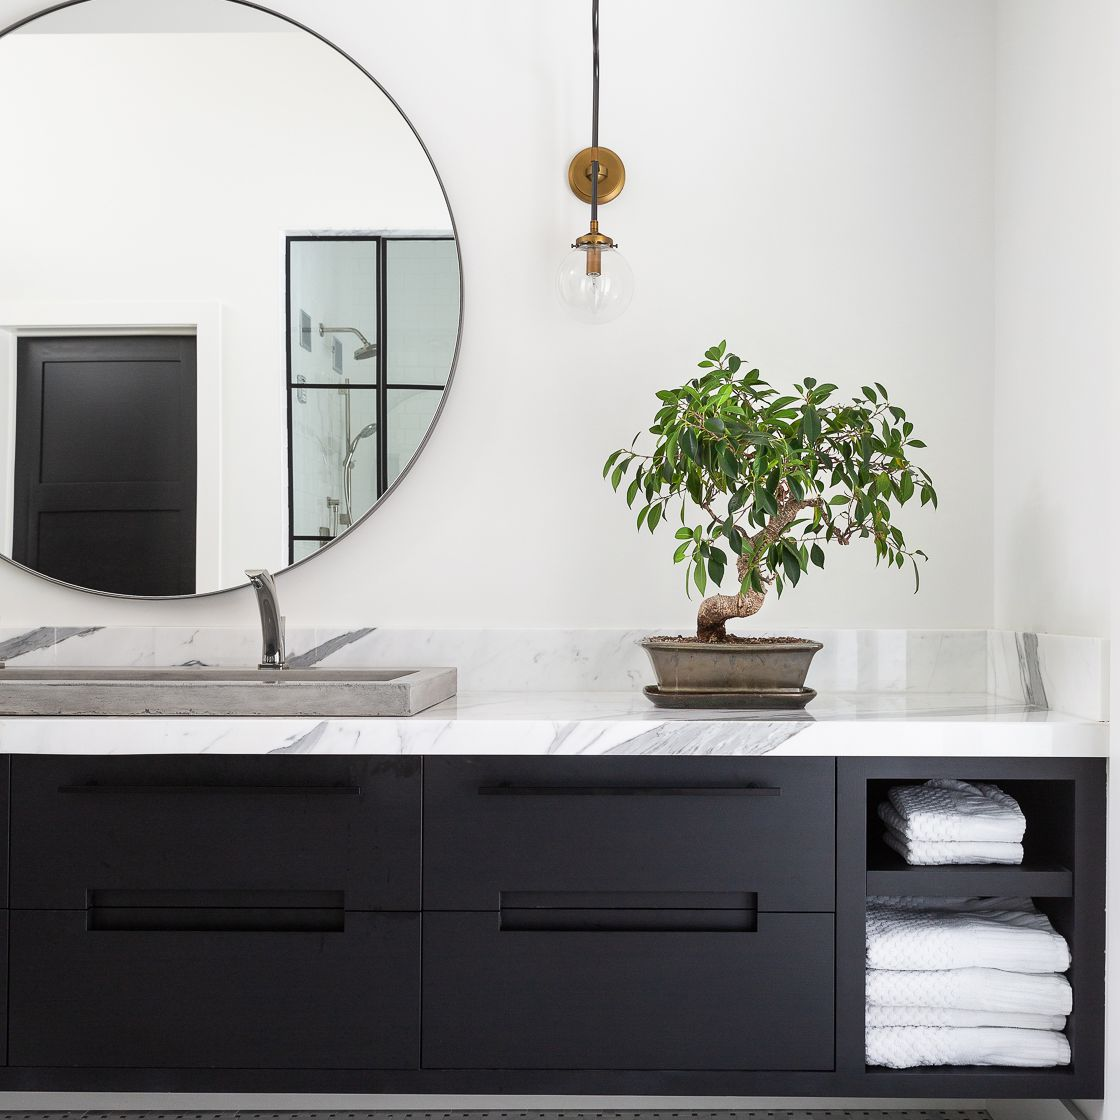 A bathroom lined with marble countertops and a built-in marble backsplash